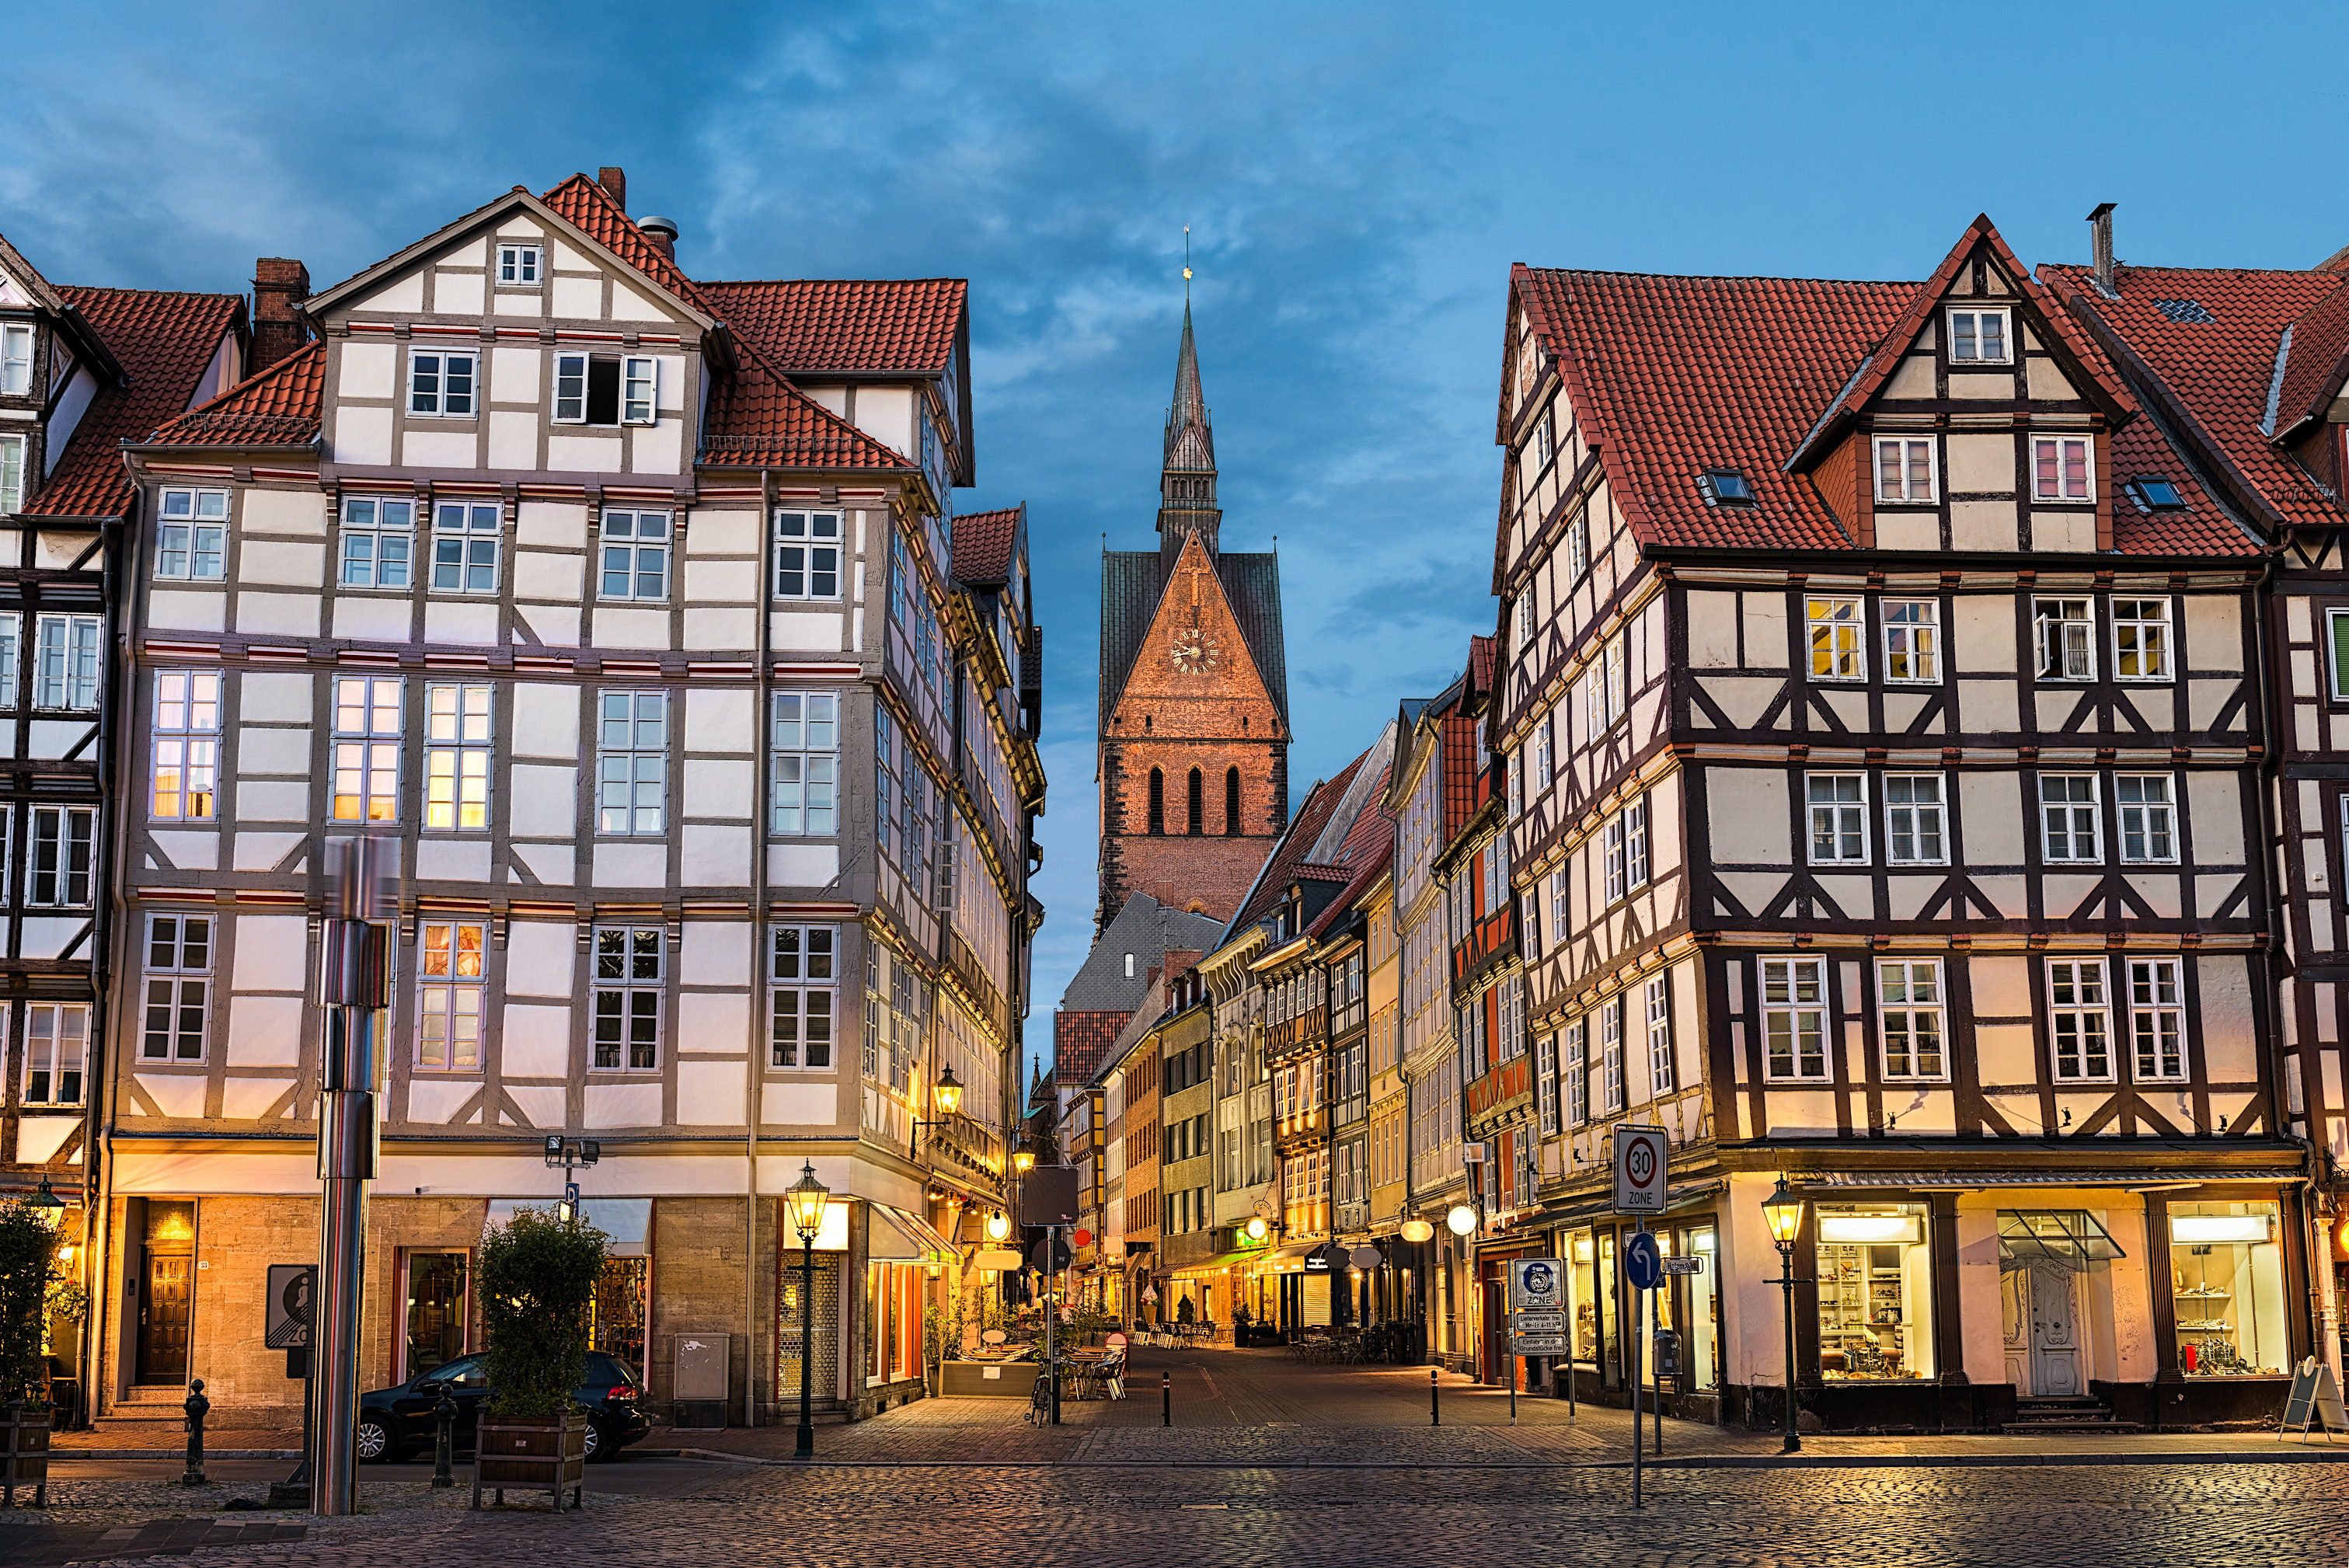 Hanover Travel Lonely Planet